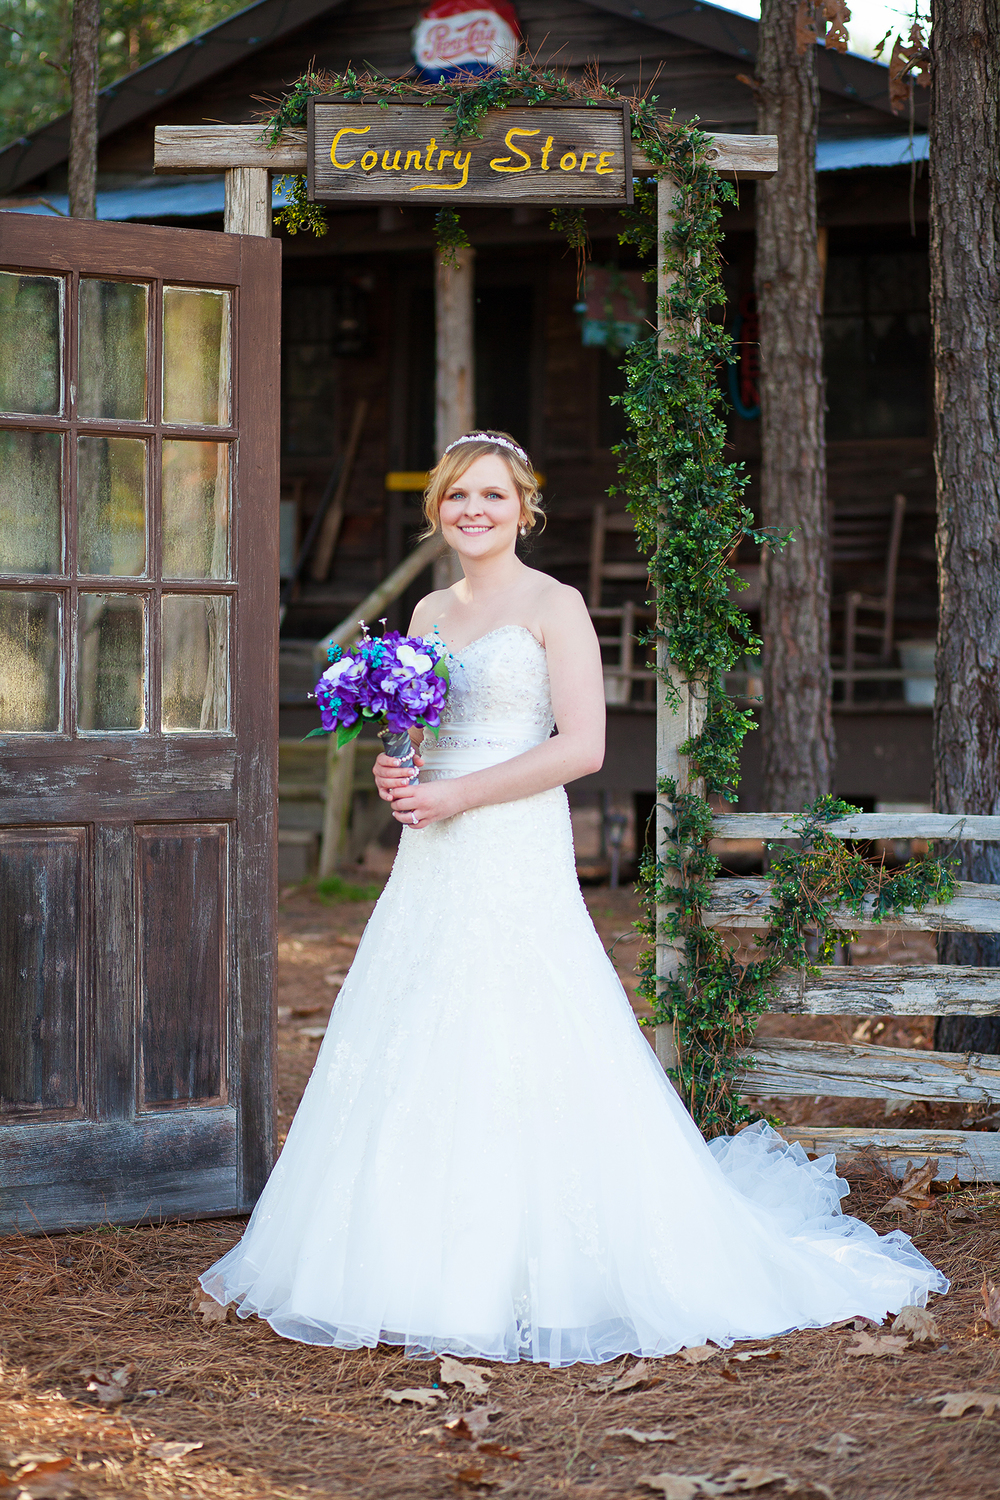 Bridal Portraits at Shady Wagon Farm